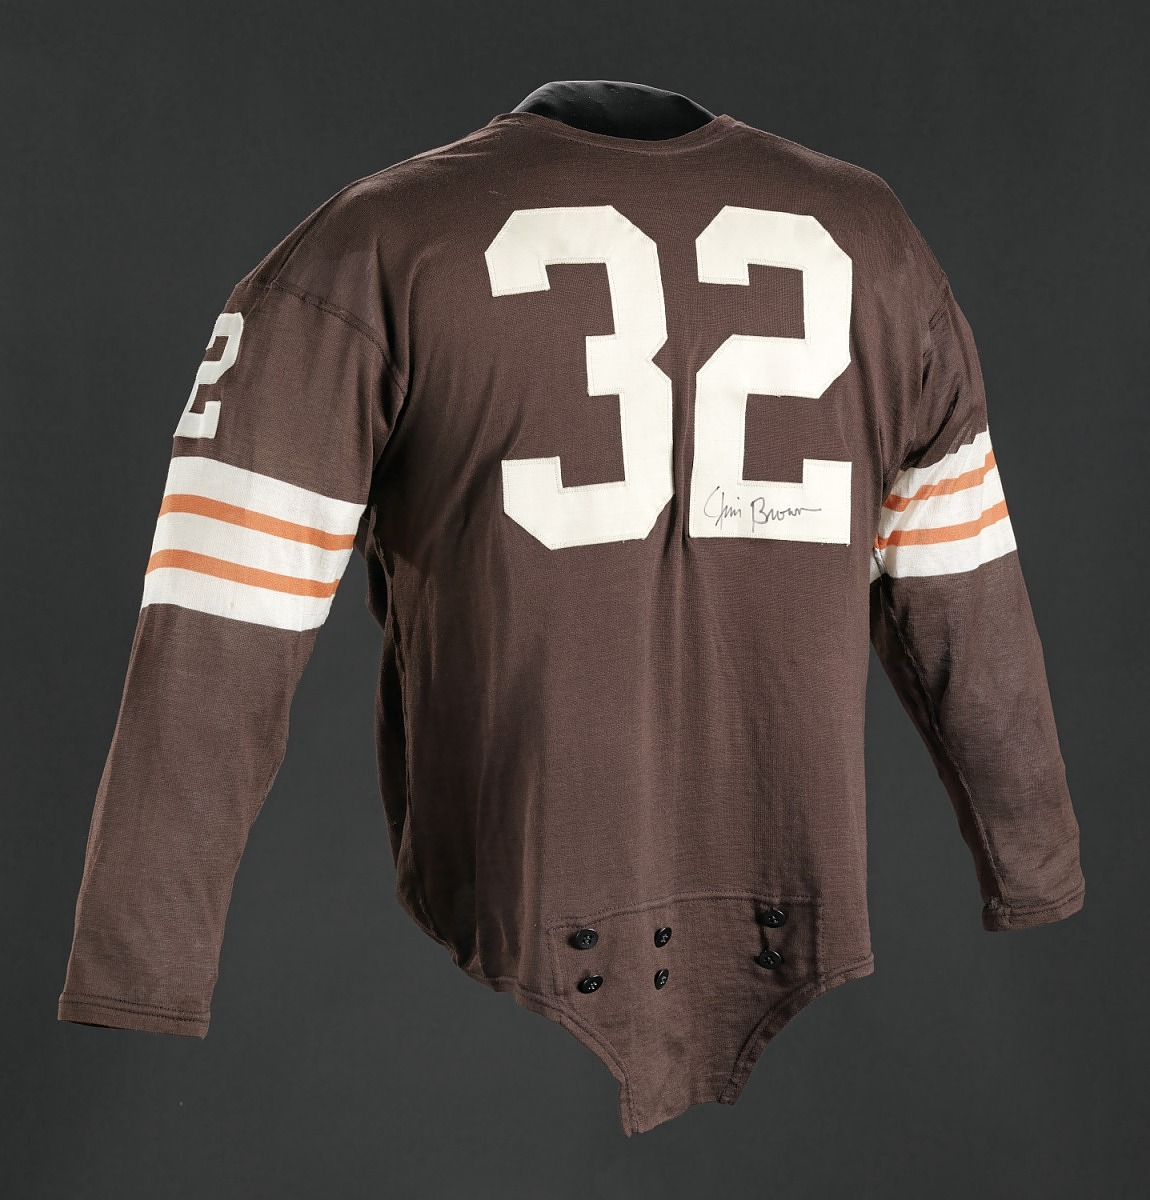 Jersey for the Cleveland Browns worn and signed by Jim Brown ...